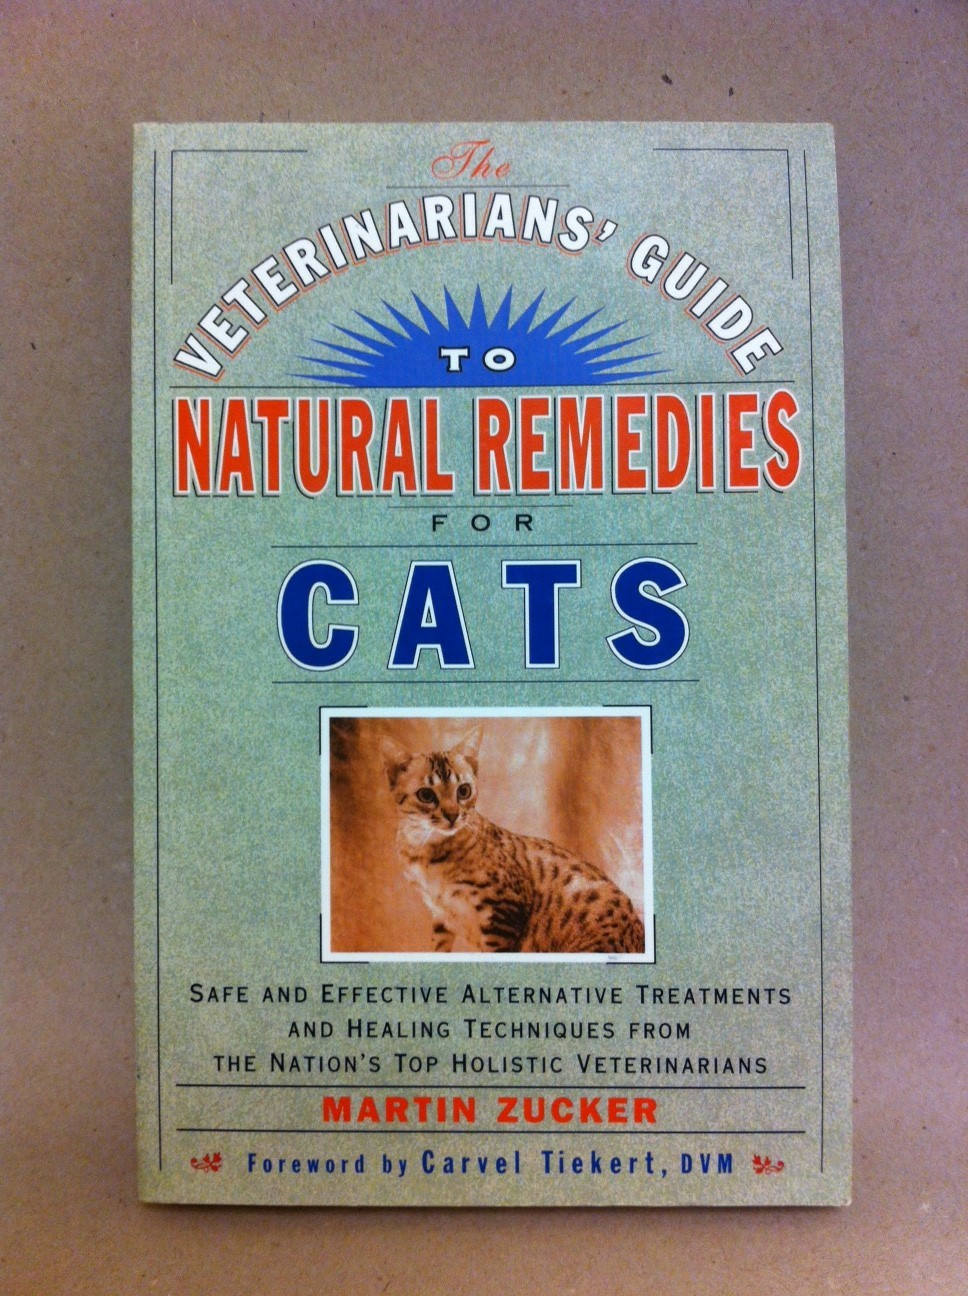 A Veterinarian's Guide to Natural Remedies for Cats T4094